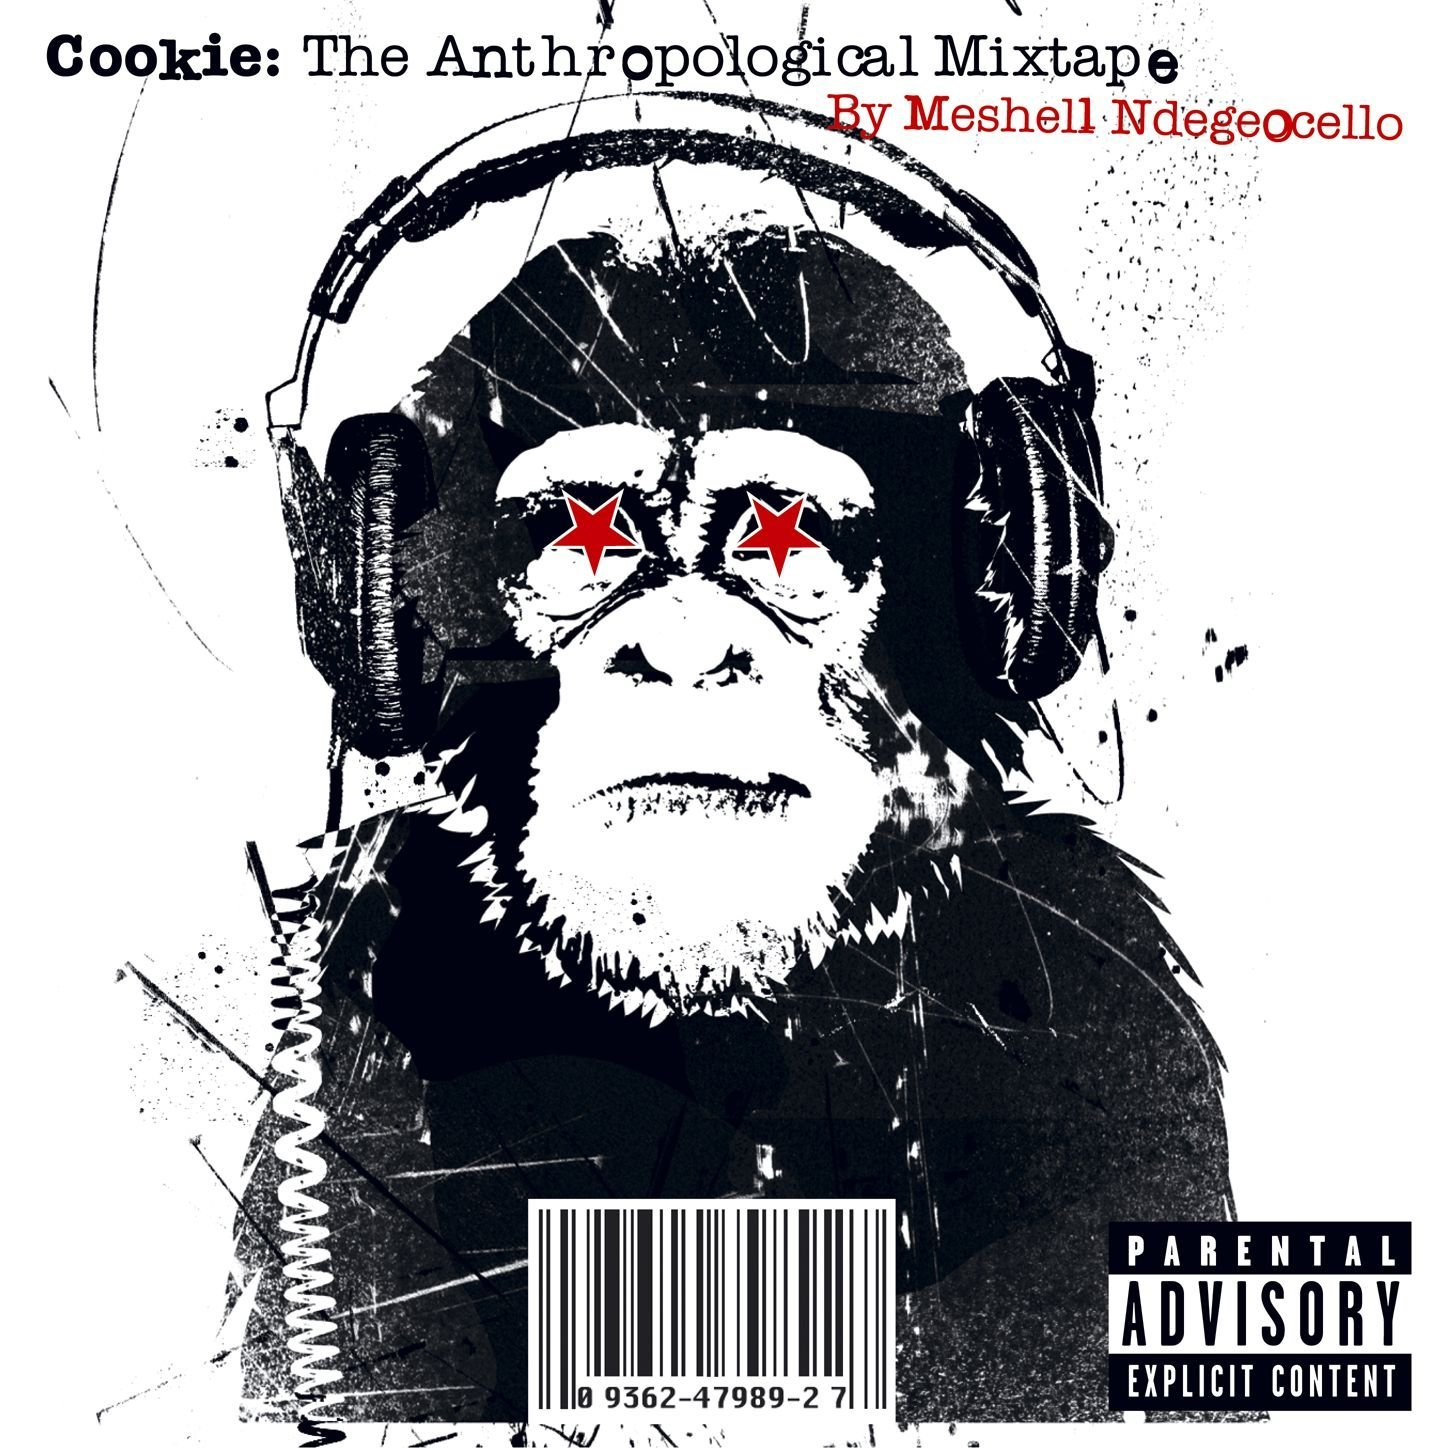 Meshell Ndegeocello, Cookie: The Anthropological Mixtape